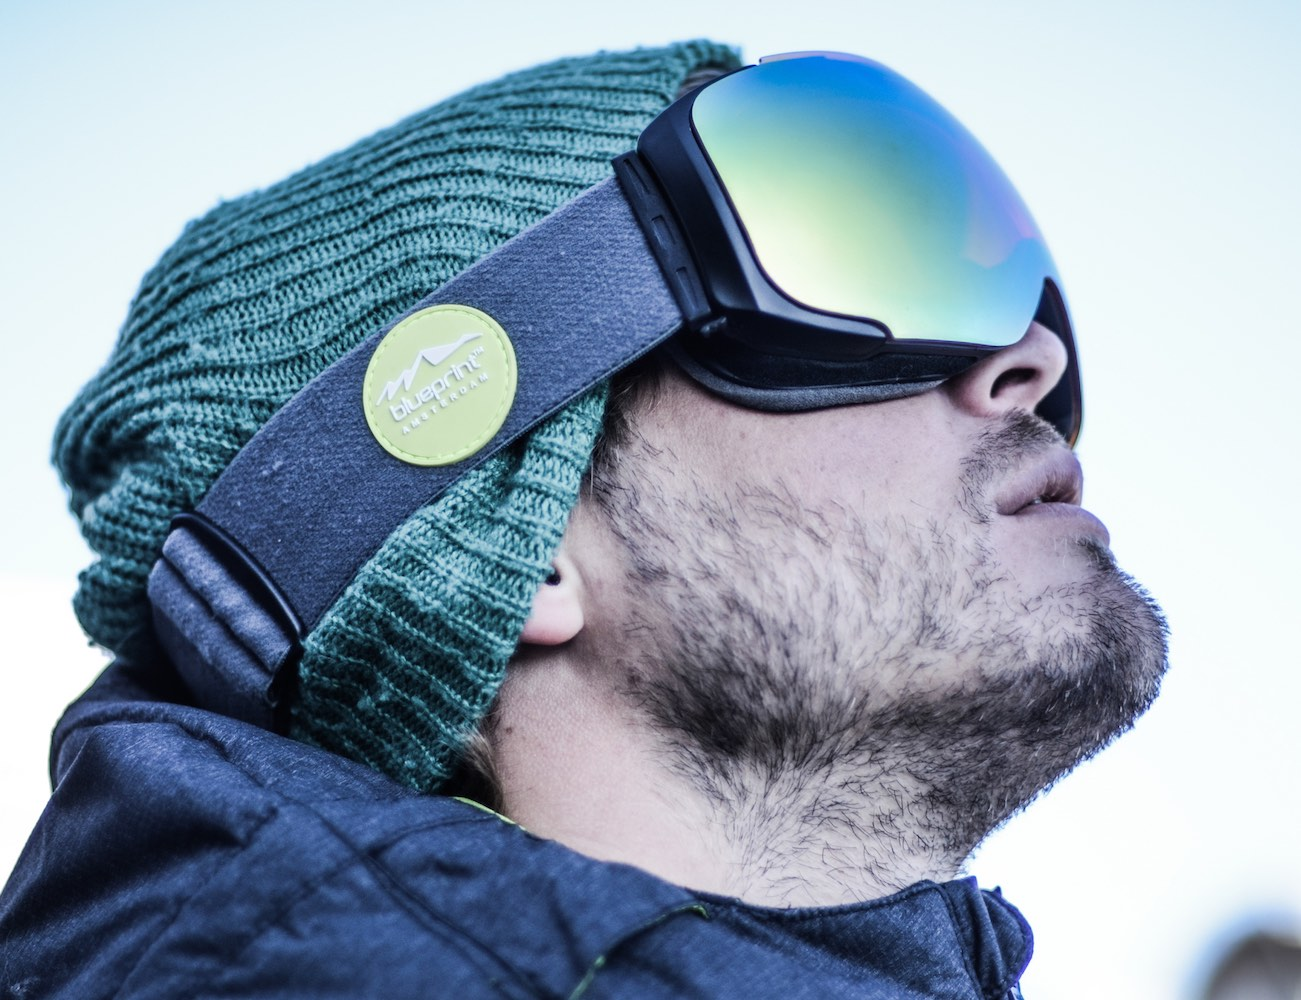 BSG2 – Magnetic, Unbreakable Snow Goggles, Built to Last